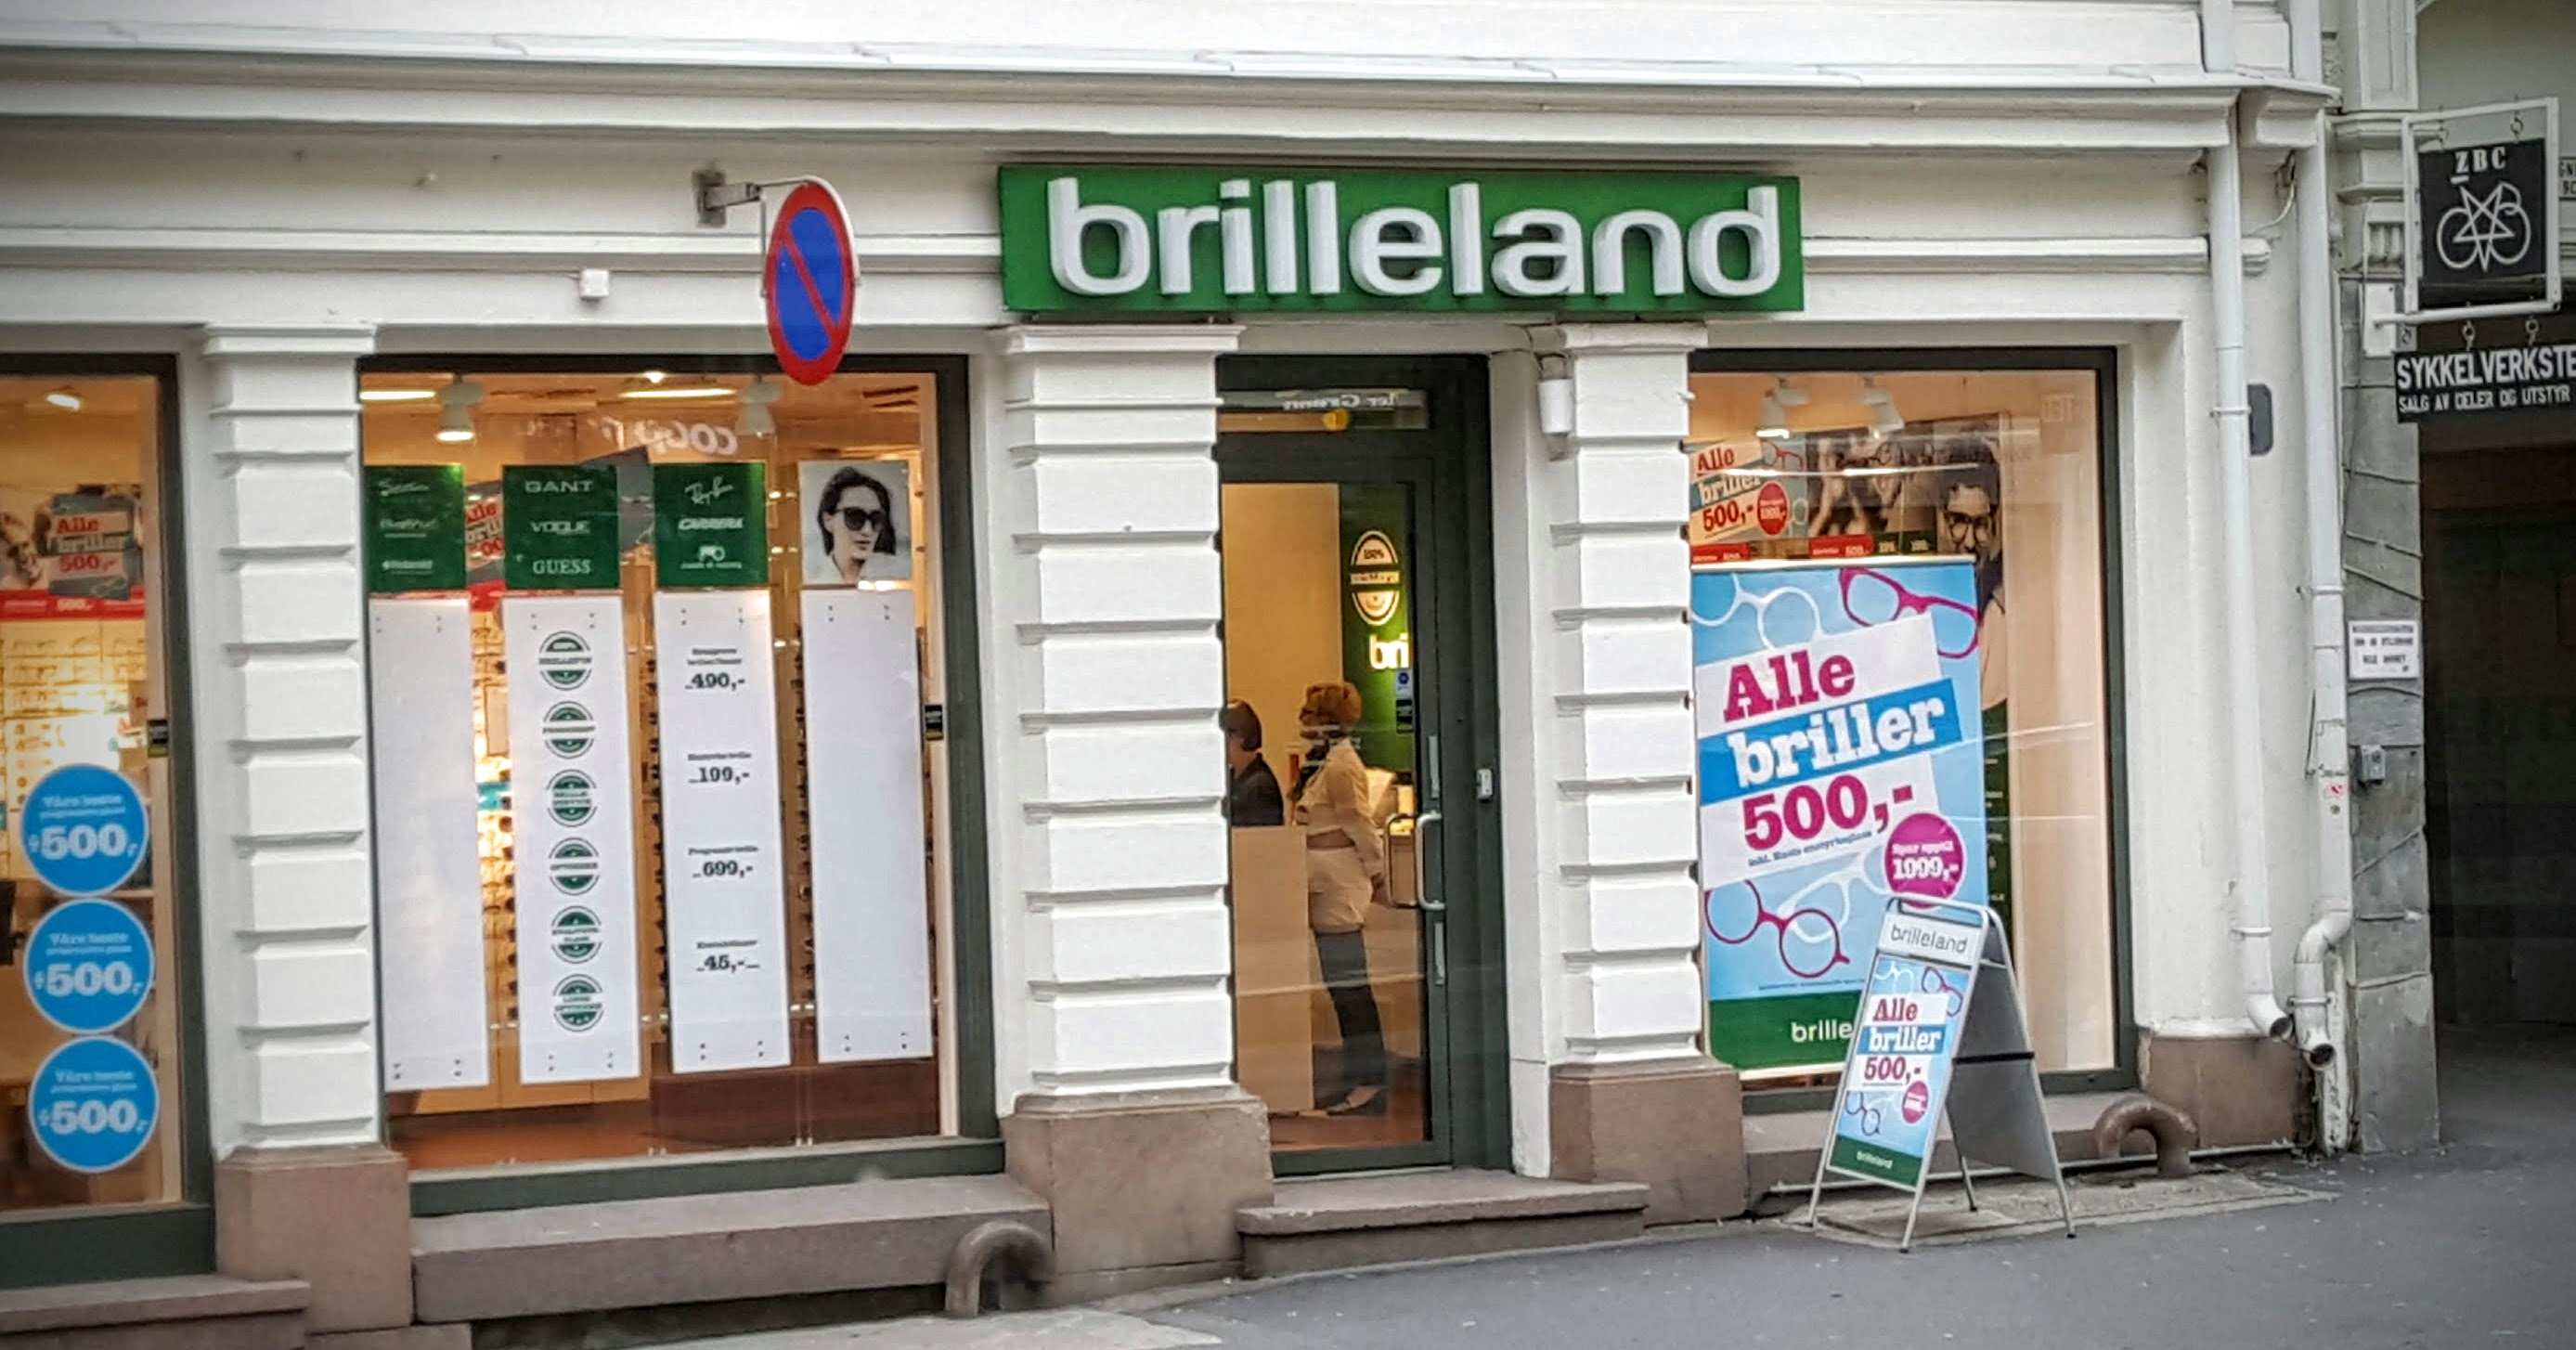 where to buy contact lenses in Oslo